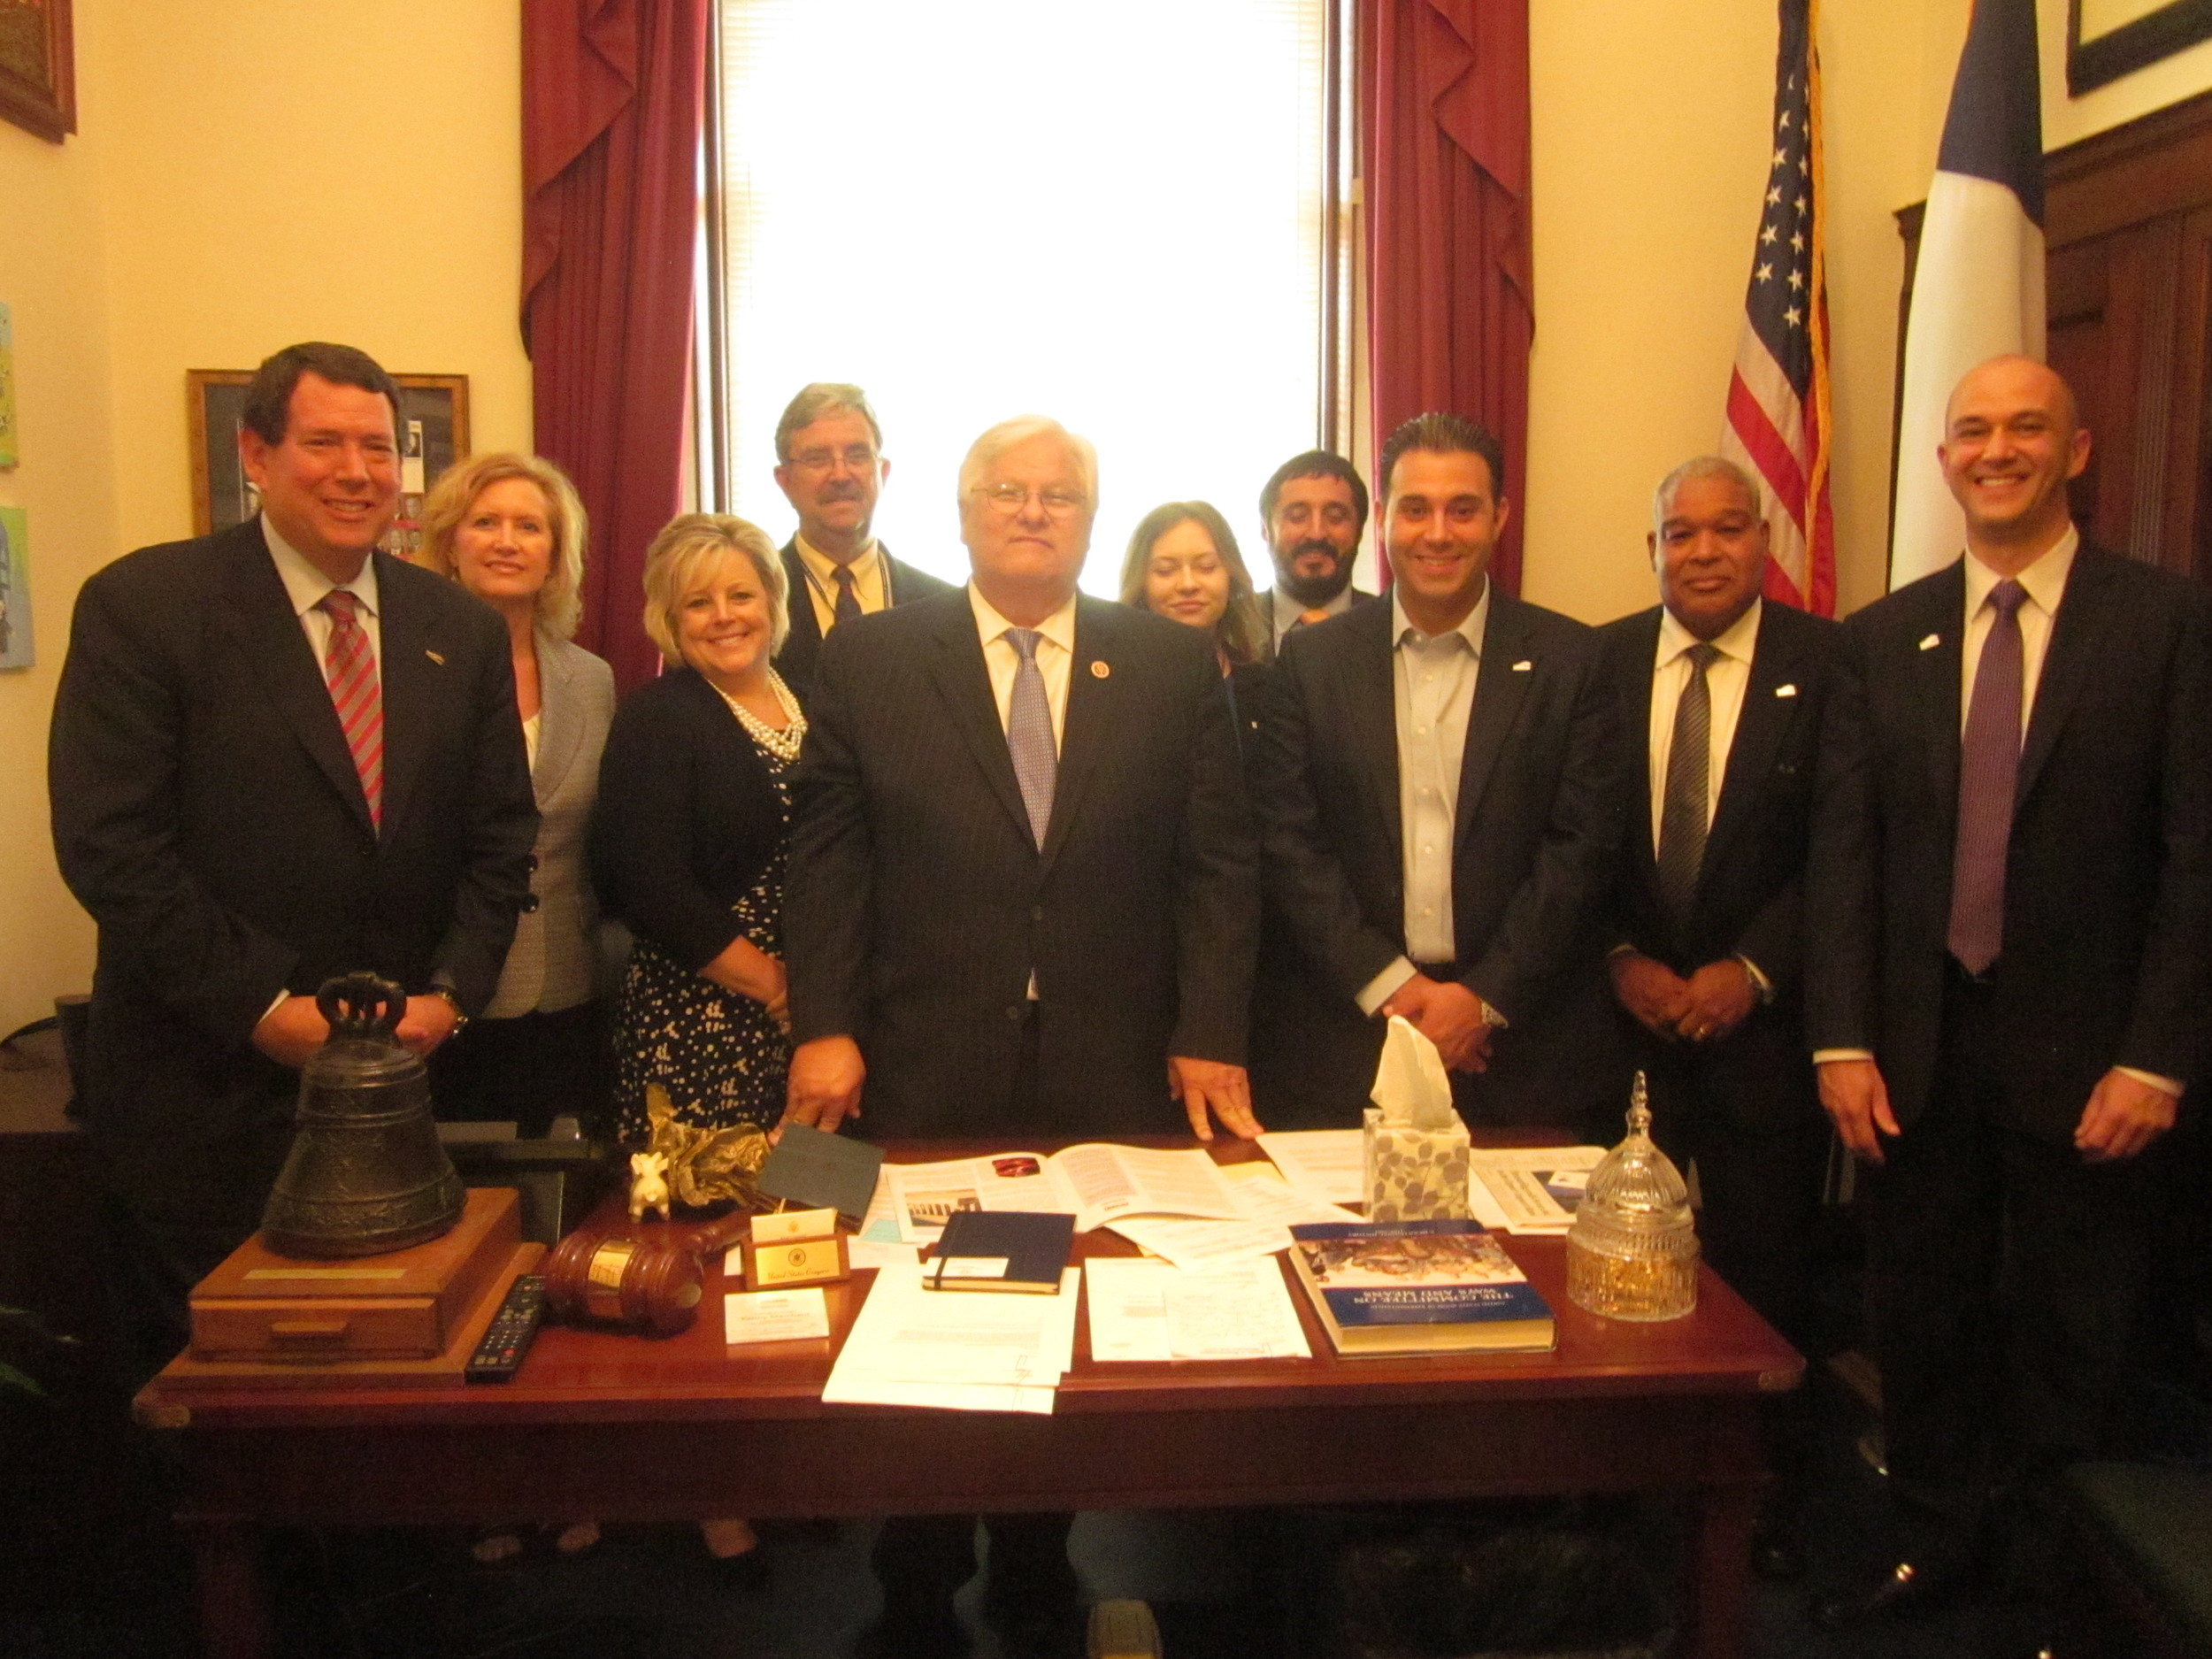 The Irving Delegation with U.S. Congressman Kenny Marchant.